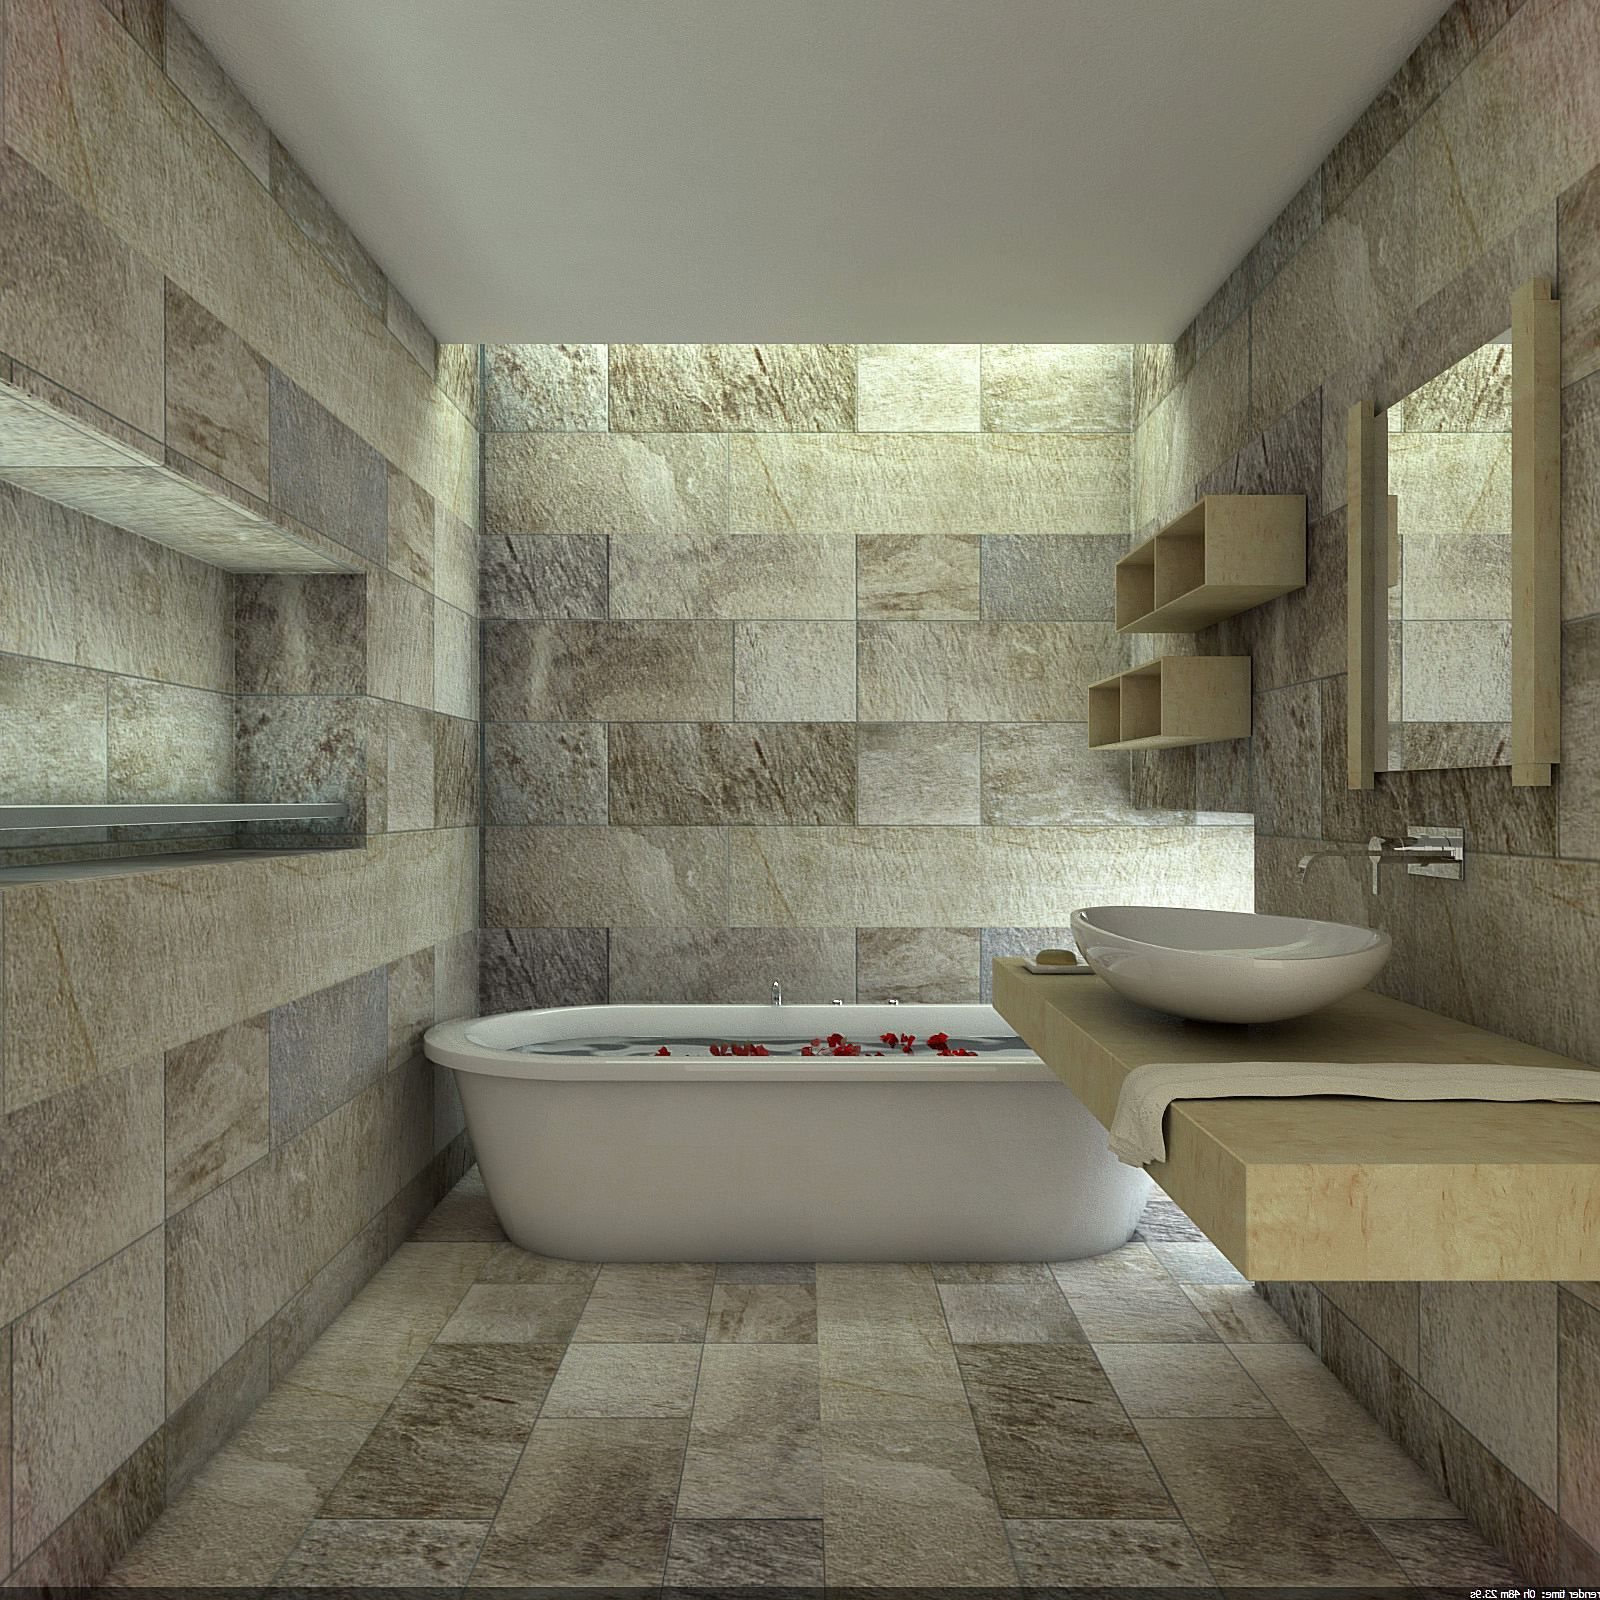 Image result for natural stone bathrooms designs | Bathroom ...